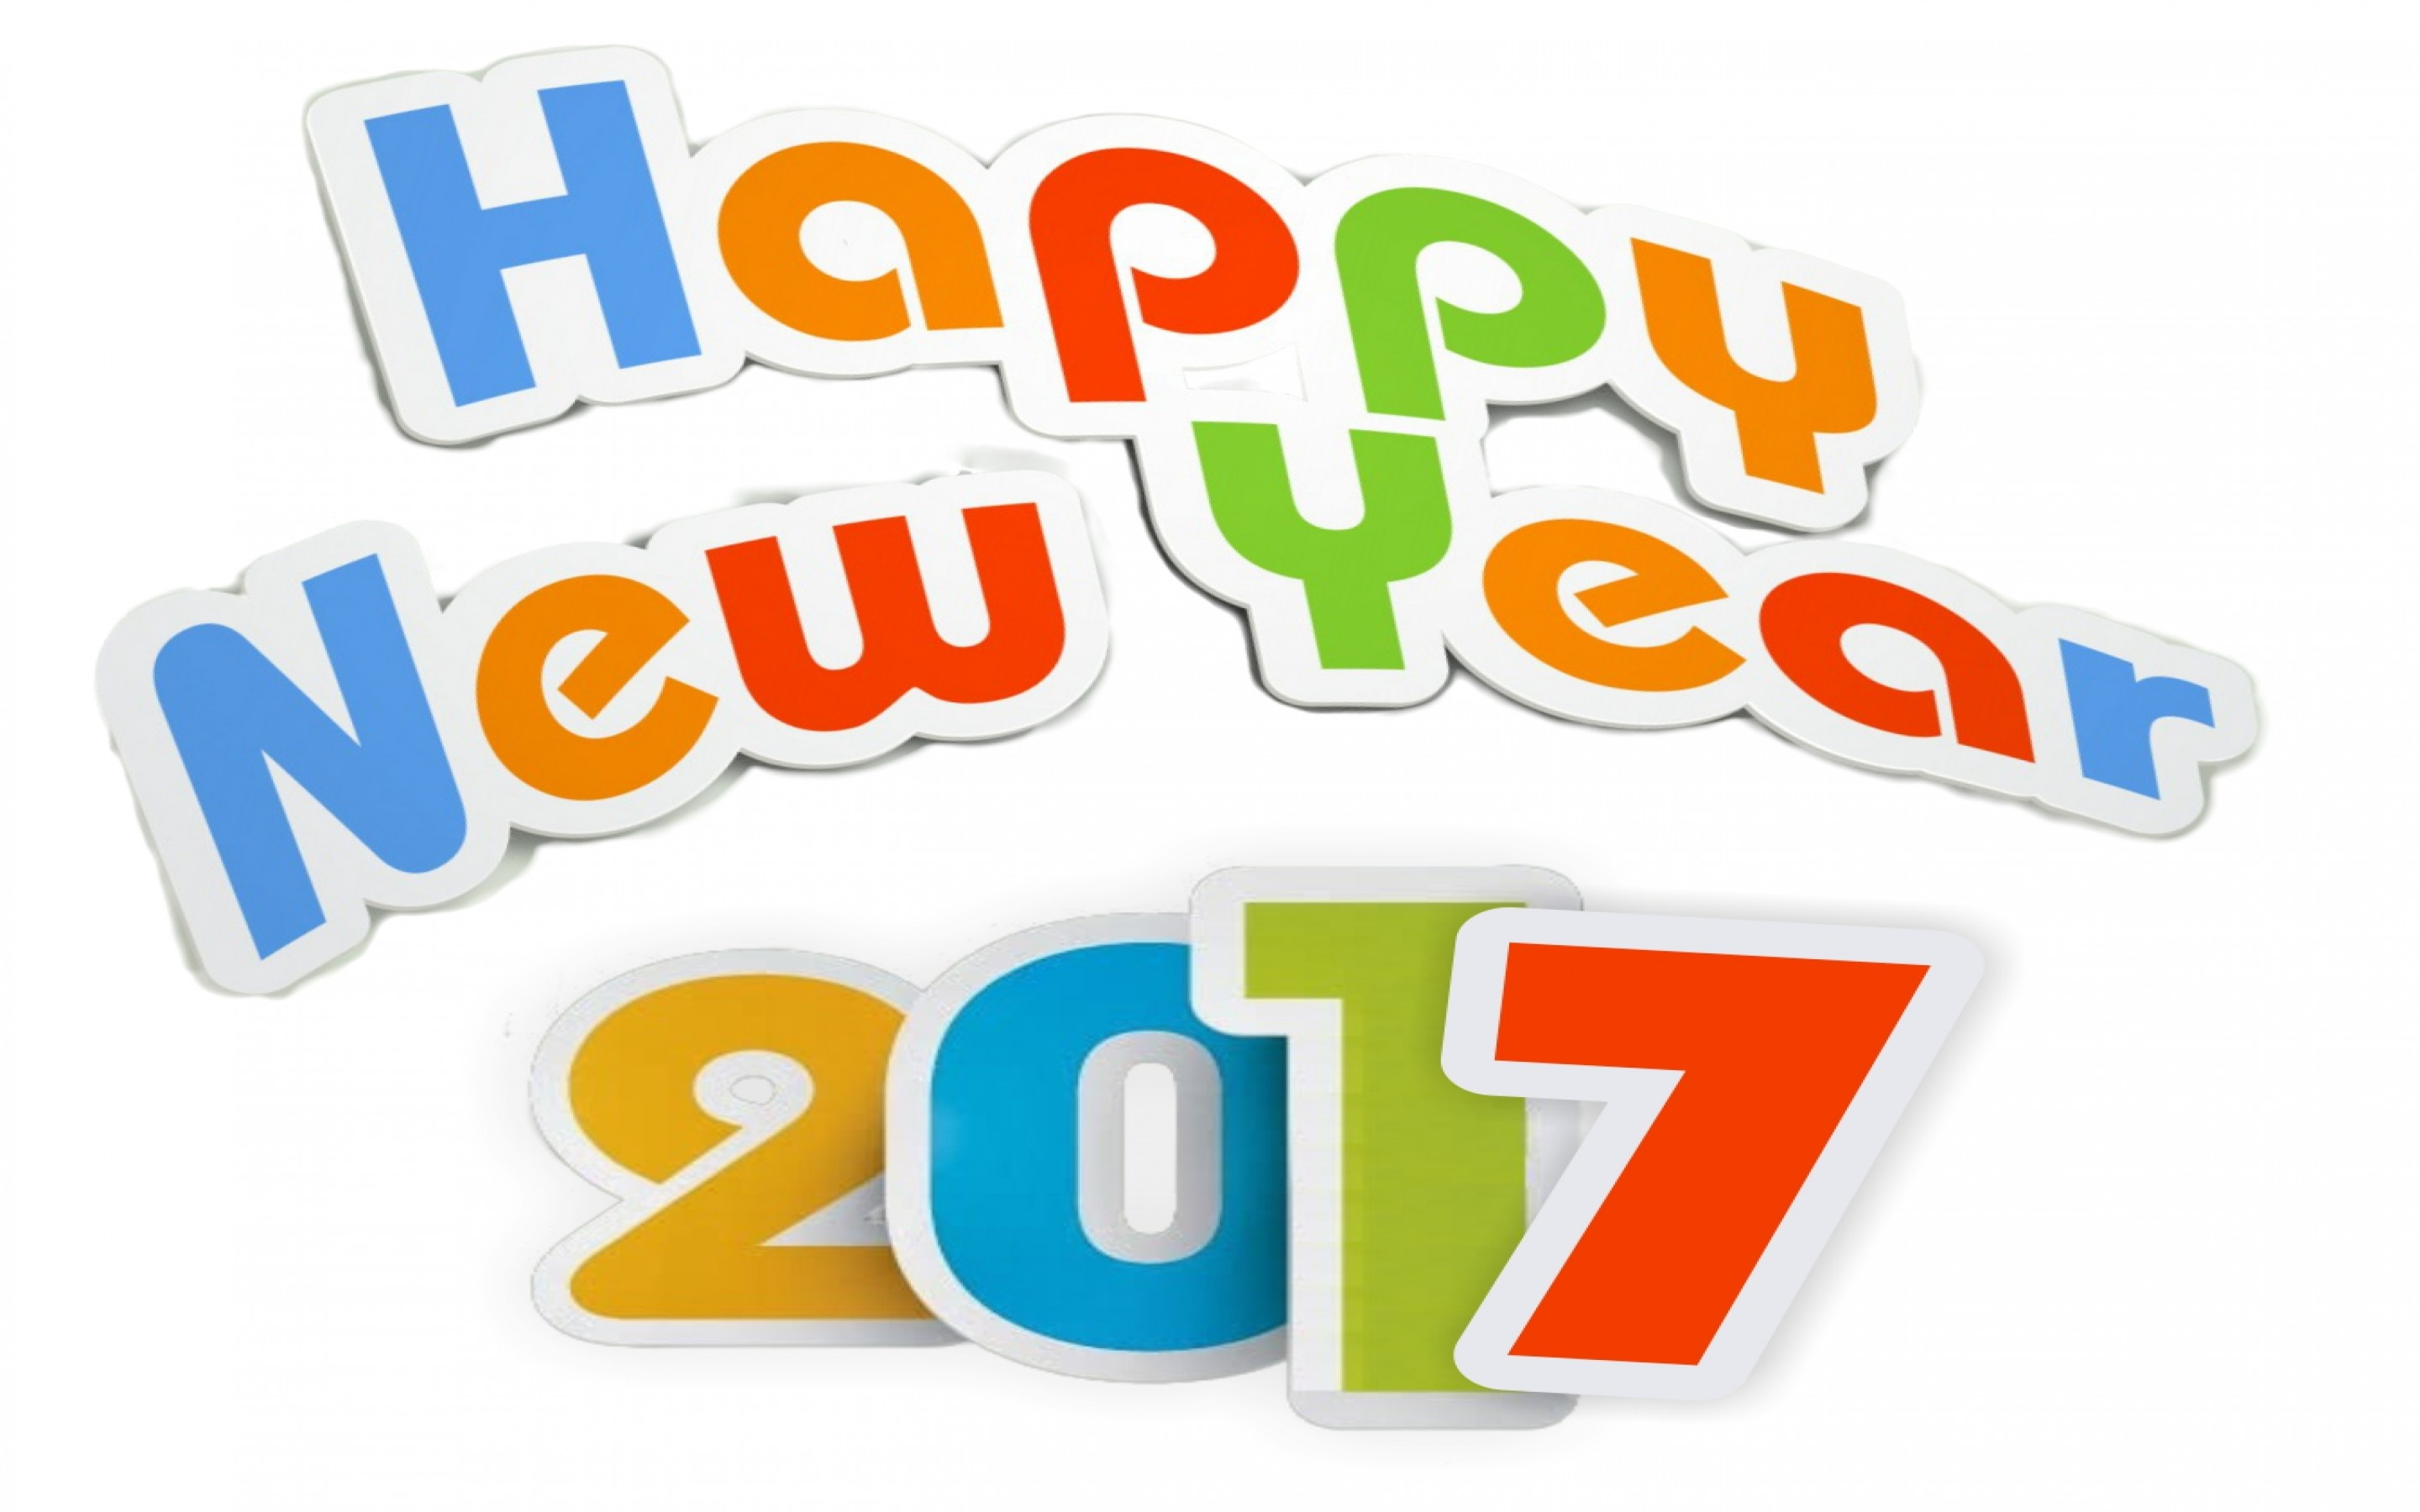 Happy New Year Png - 2017 Happy New Year Wallpaper Image #28815, Transparent background PNG HD thumbnail